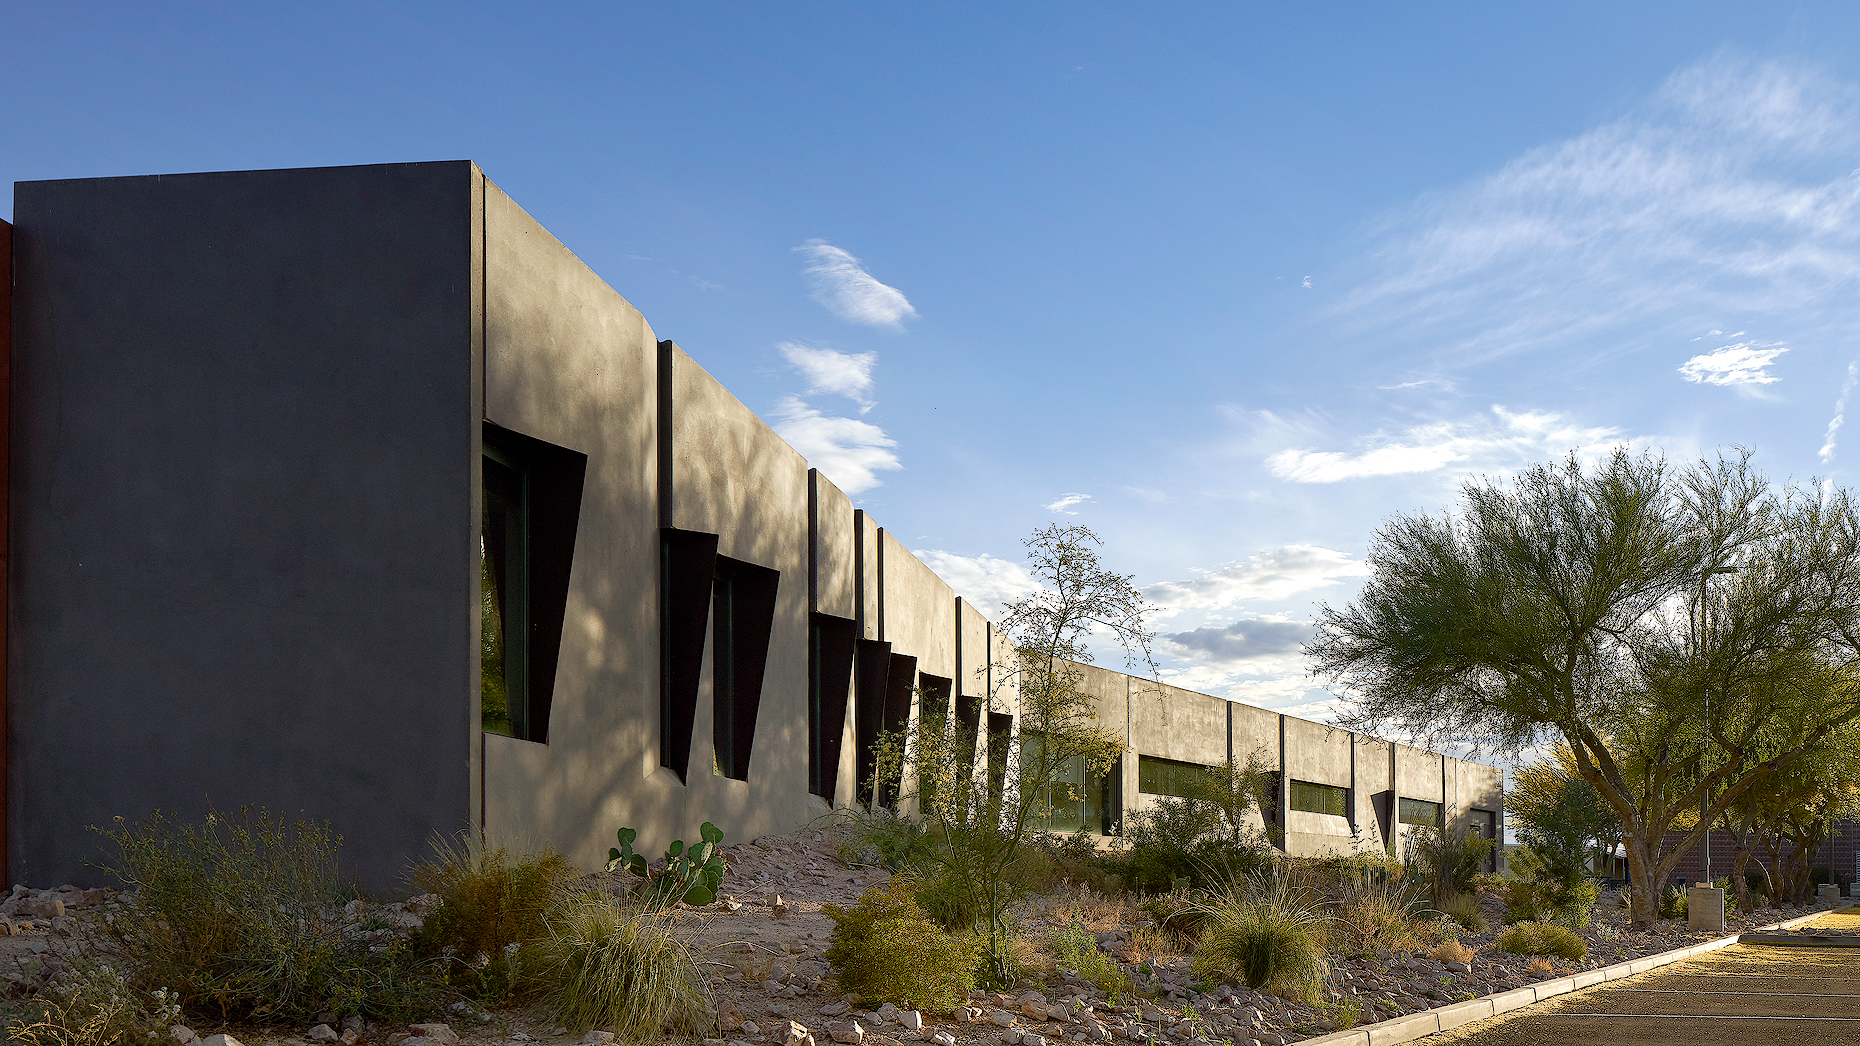 Dror Baldinger photography Architekton Scottsdale community college